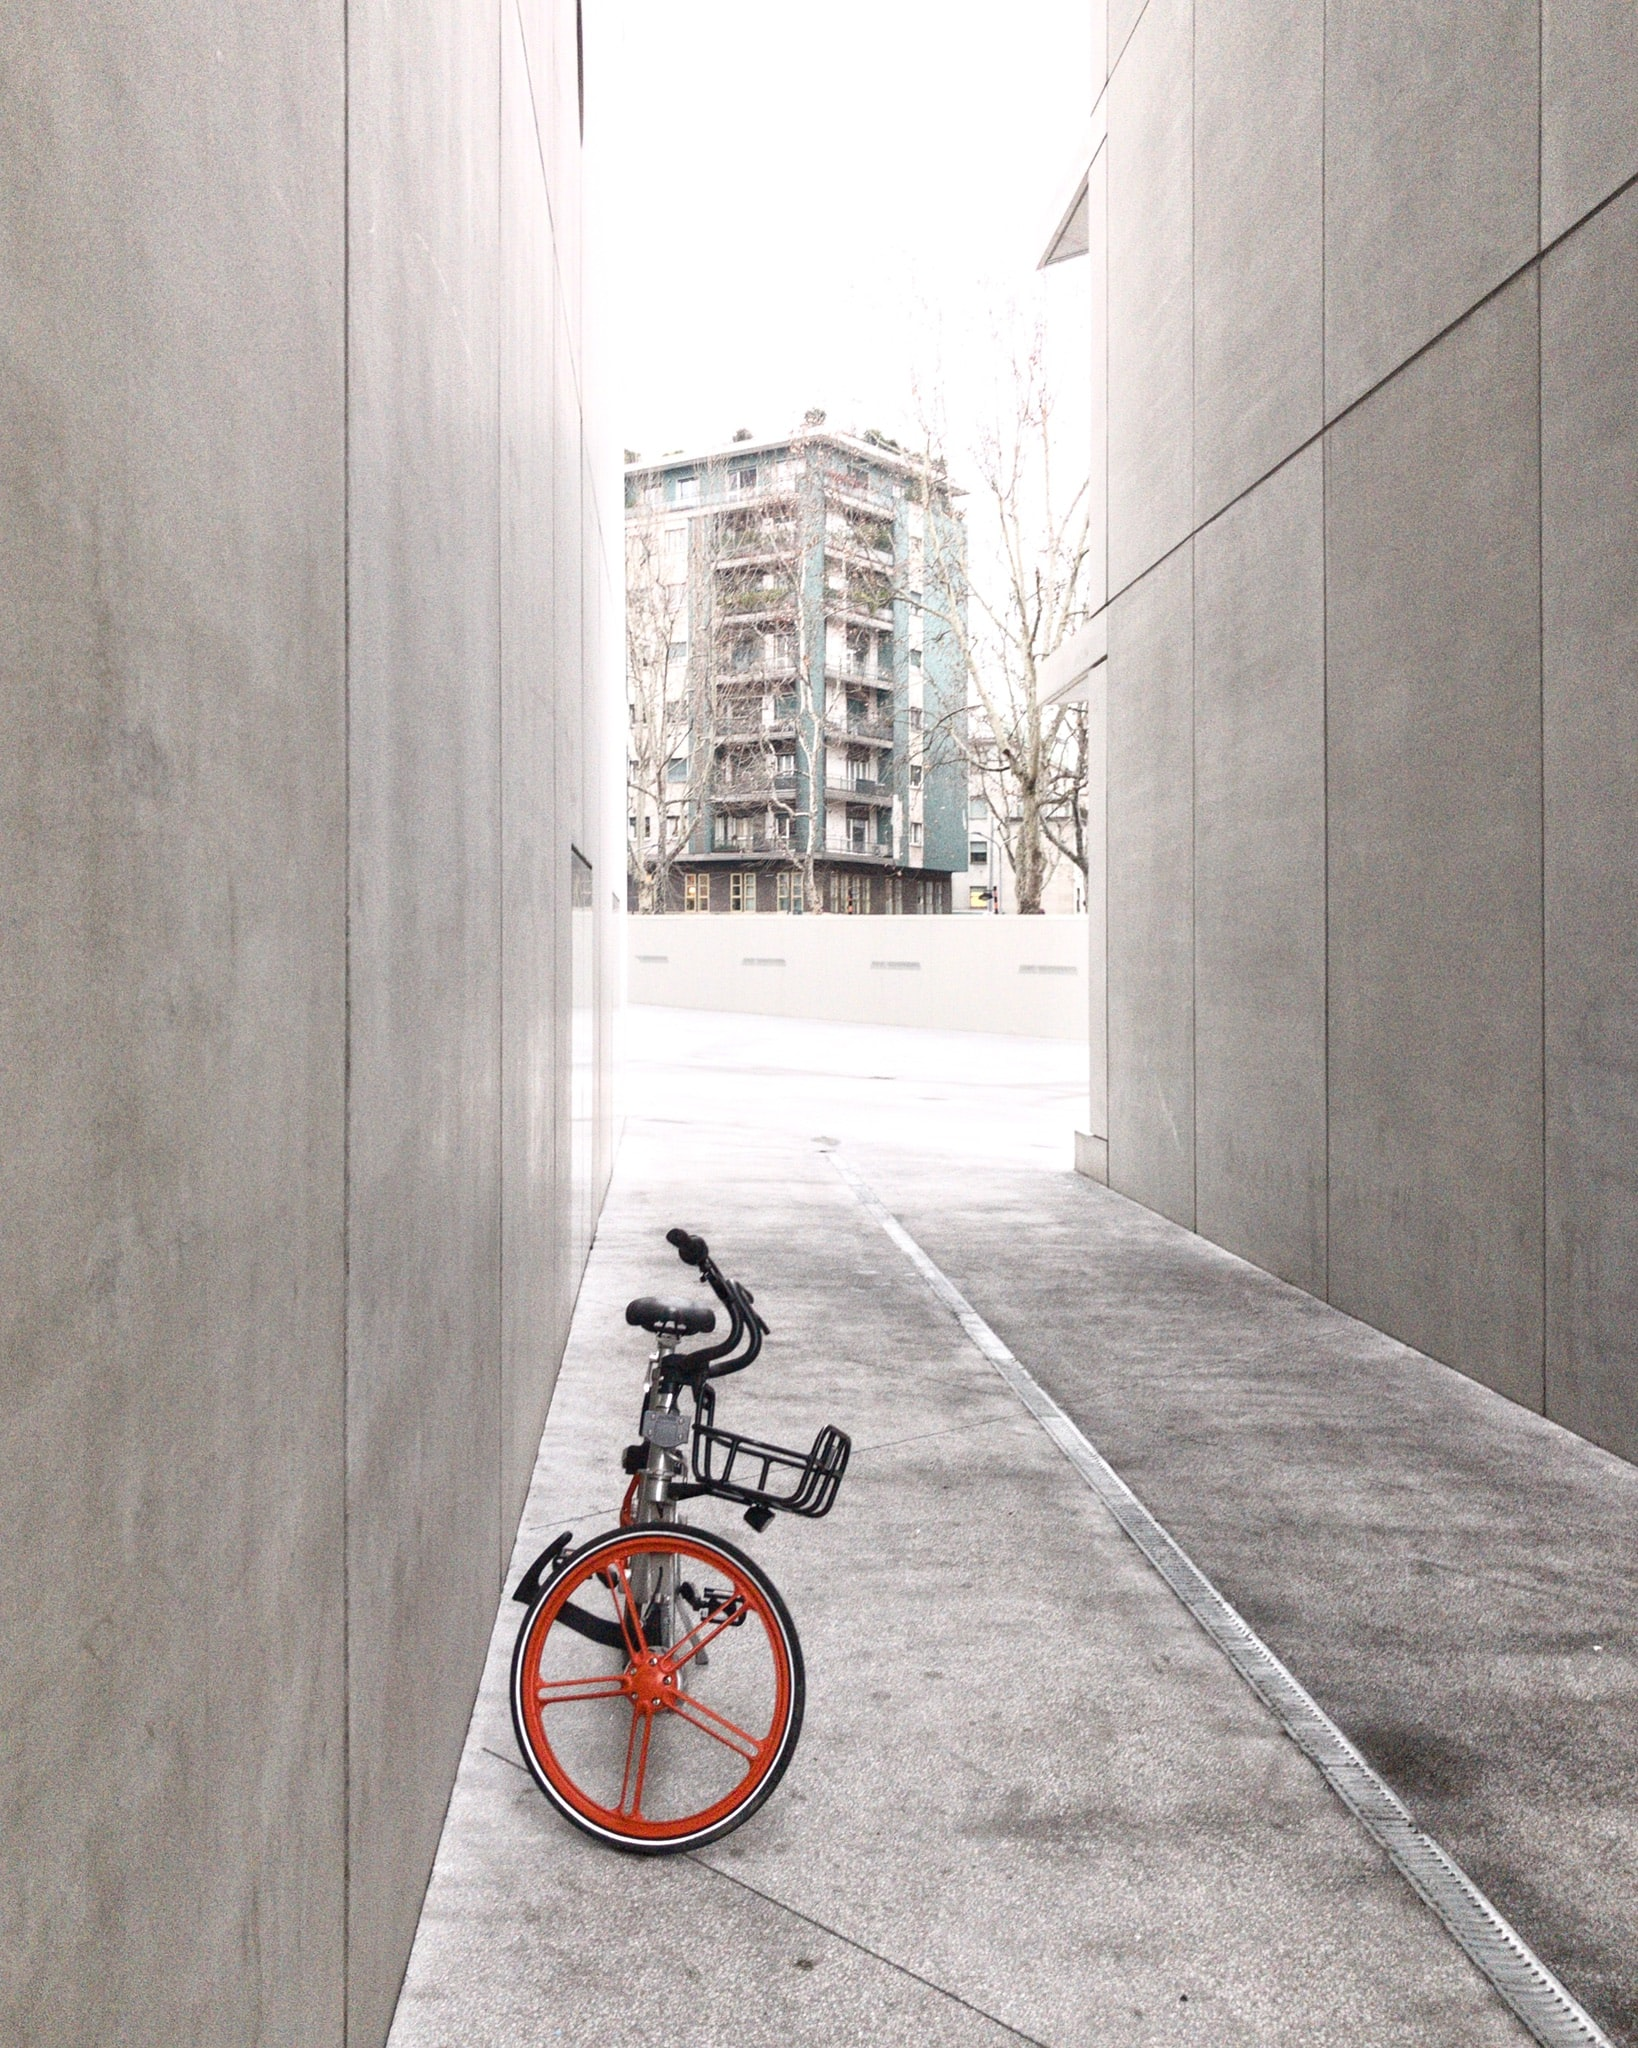 black and orange bicycle in between concrete walls